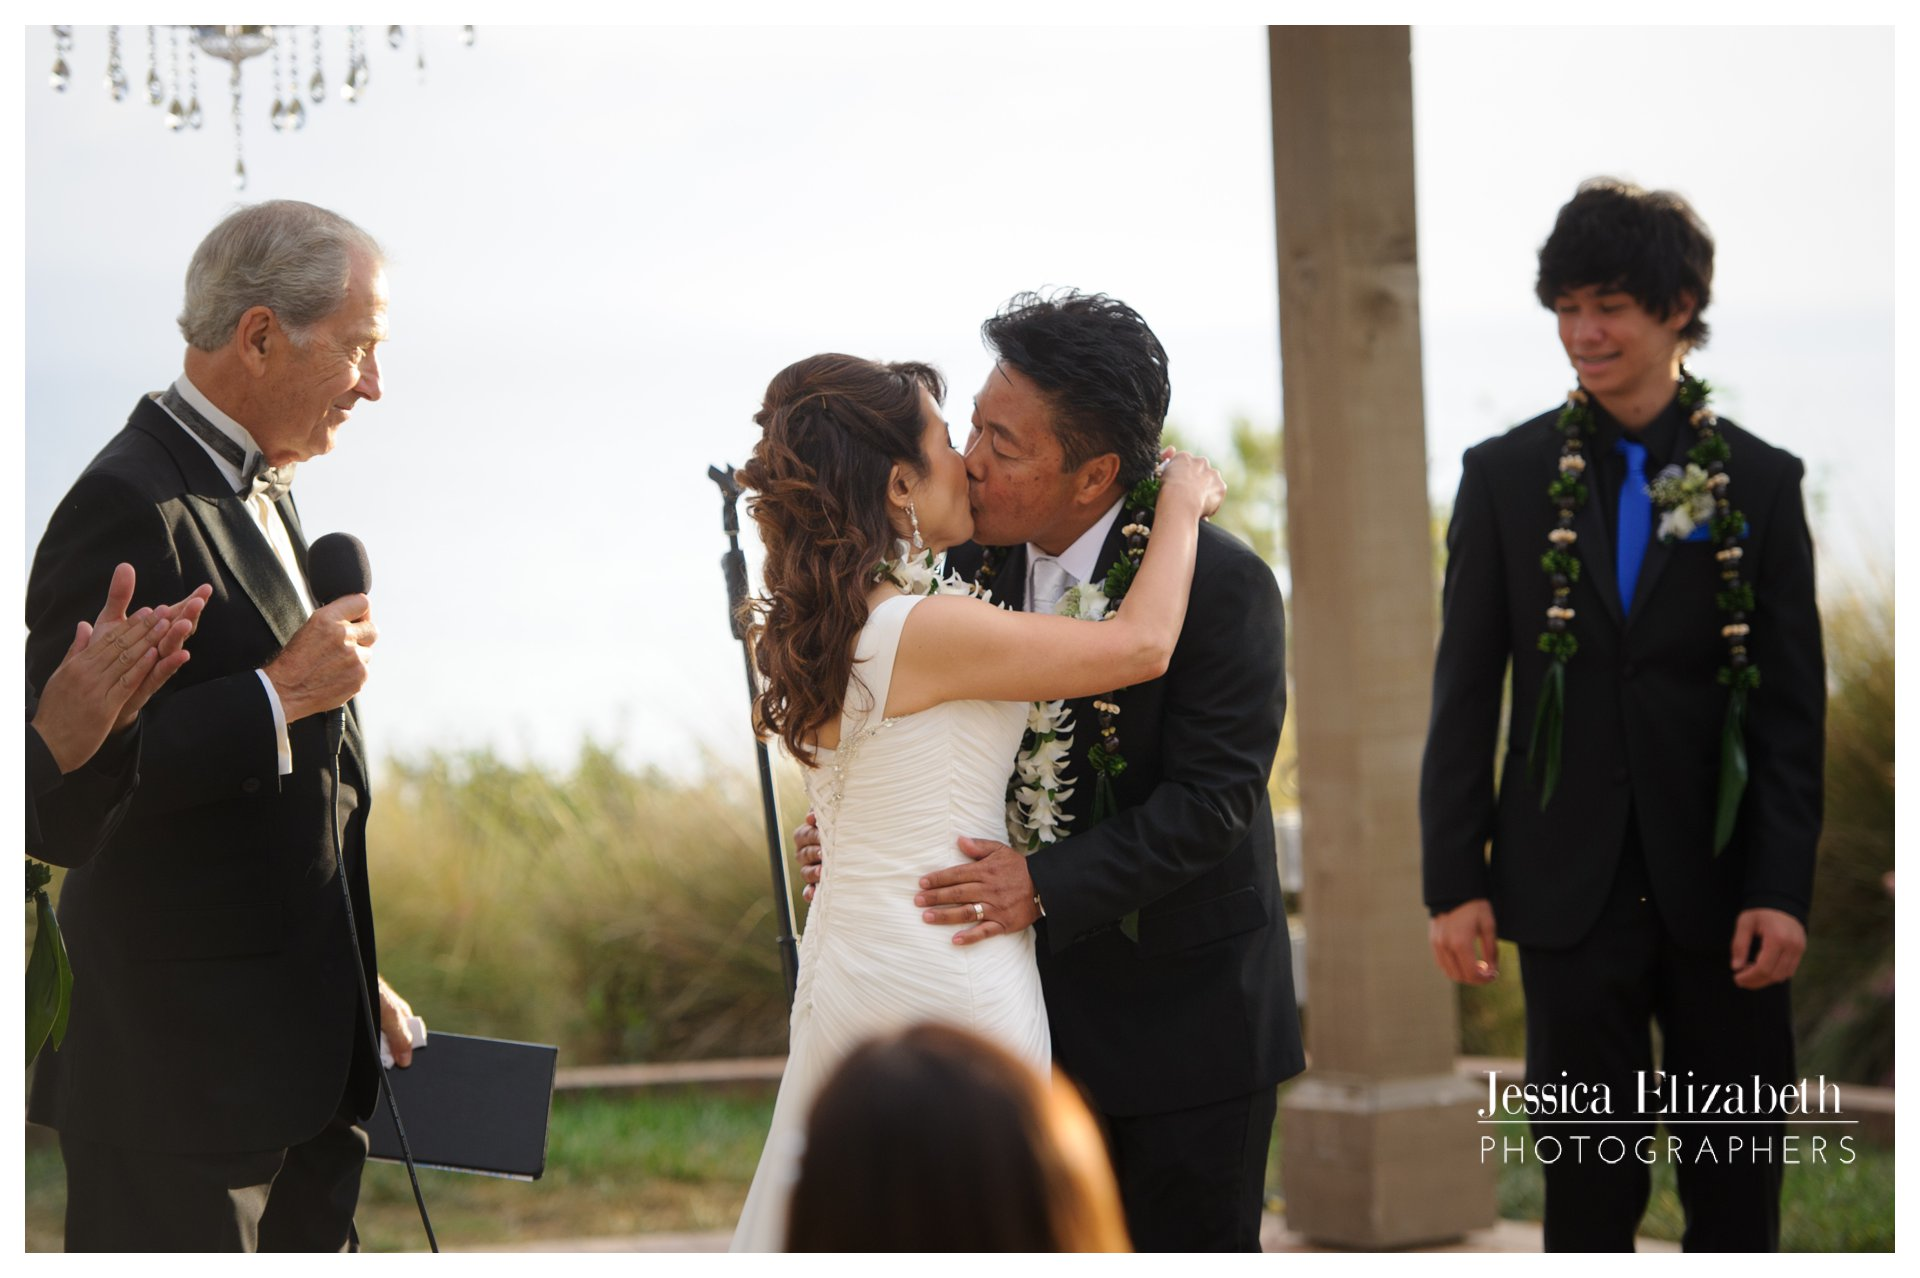 24-Terranea-Palos-Verdes-Wedding-Photography-by-Jessica-Elizabeth-w.jpg